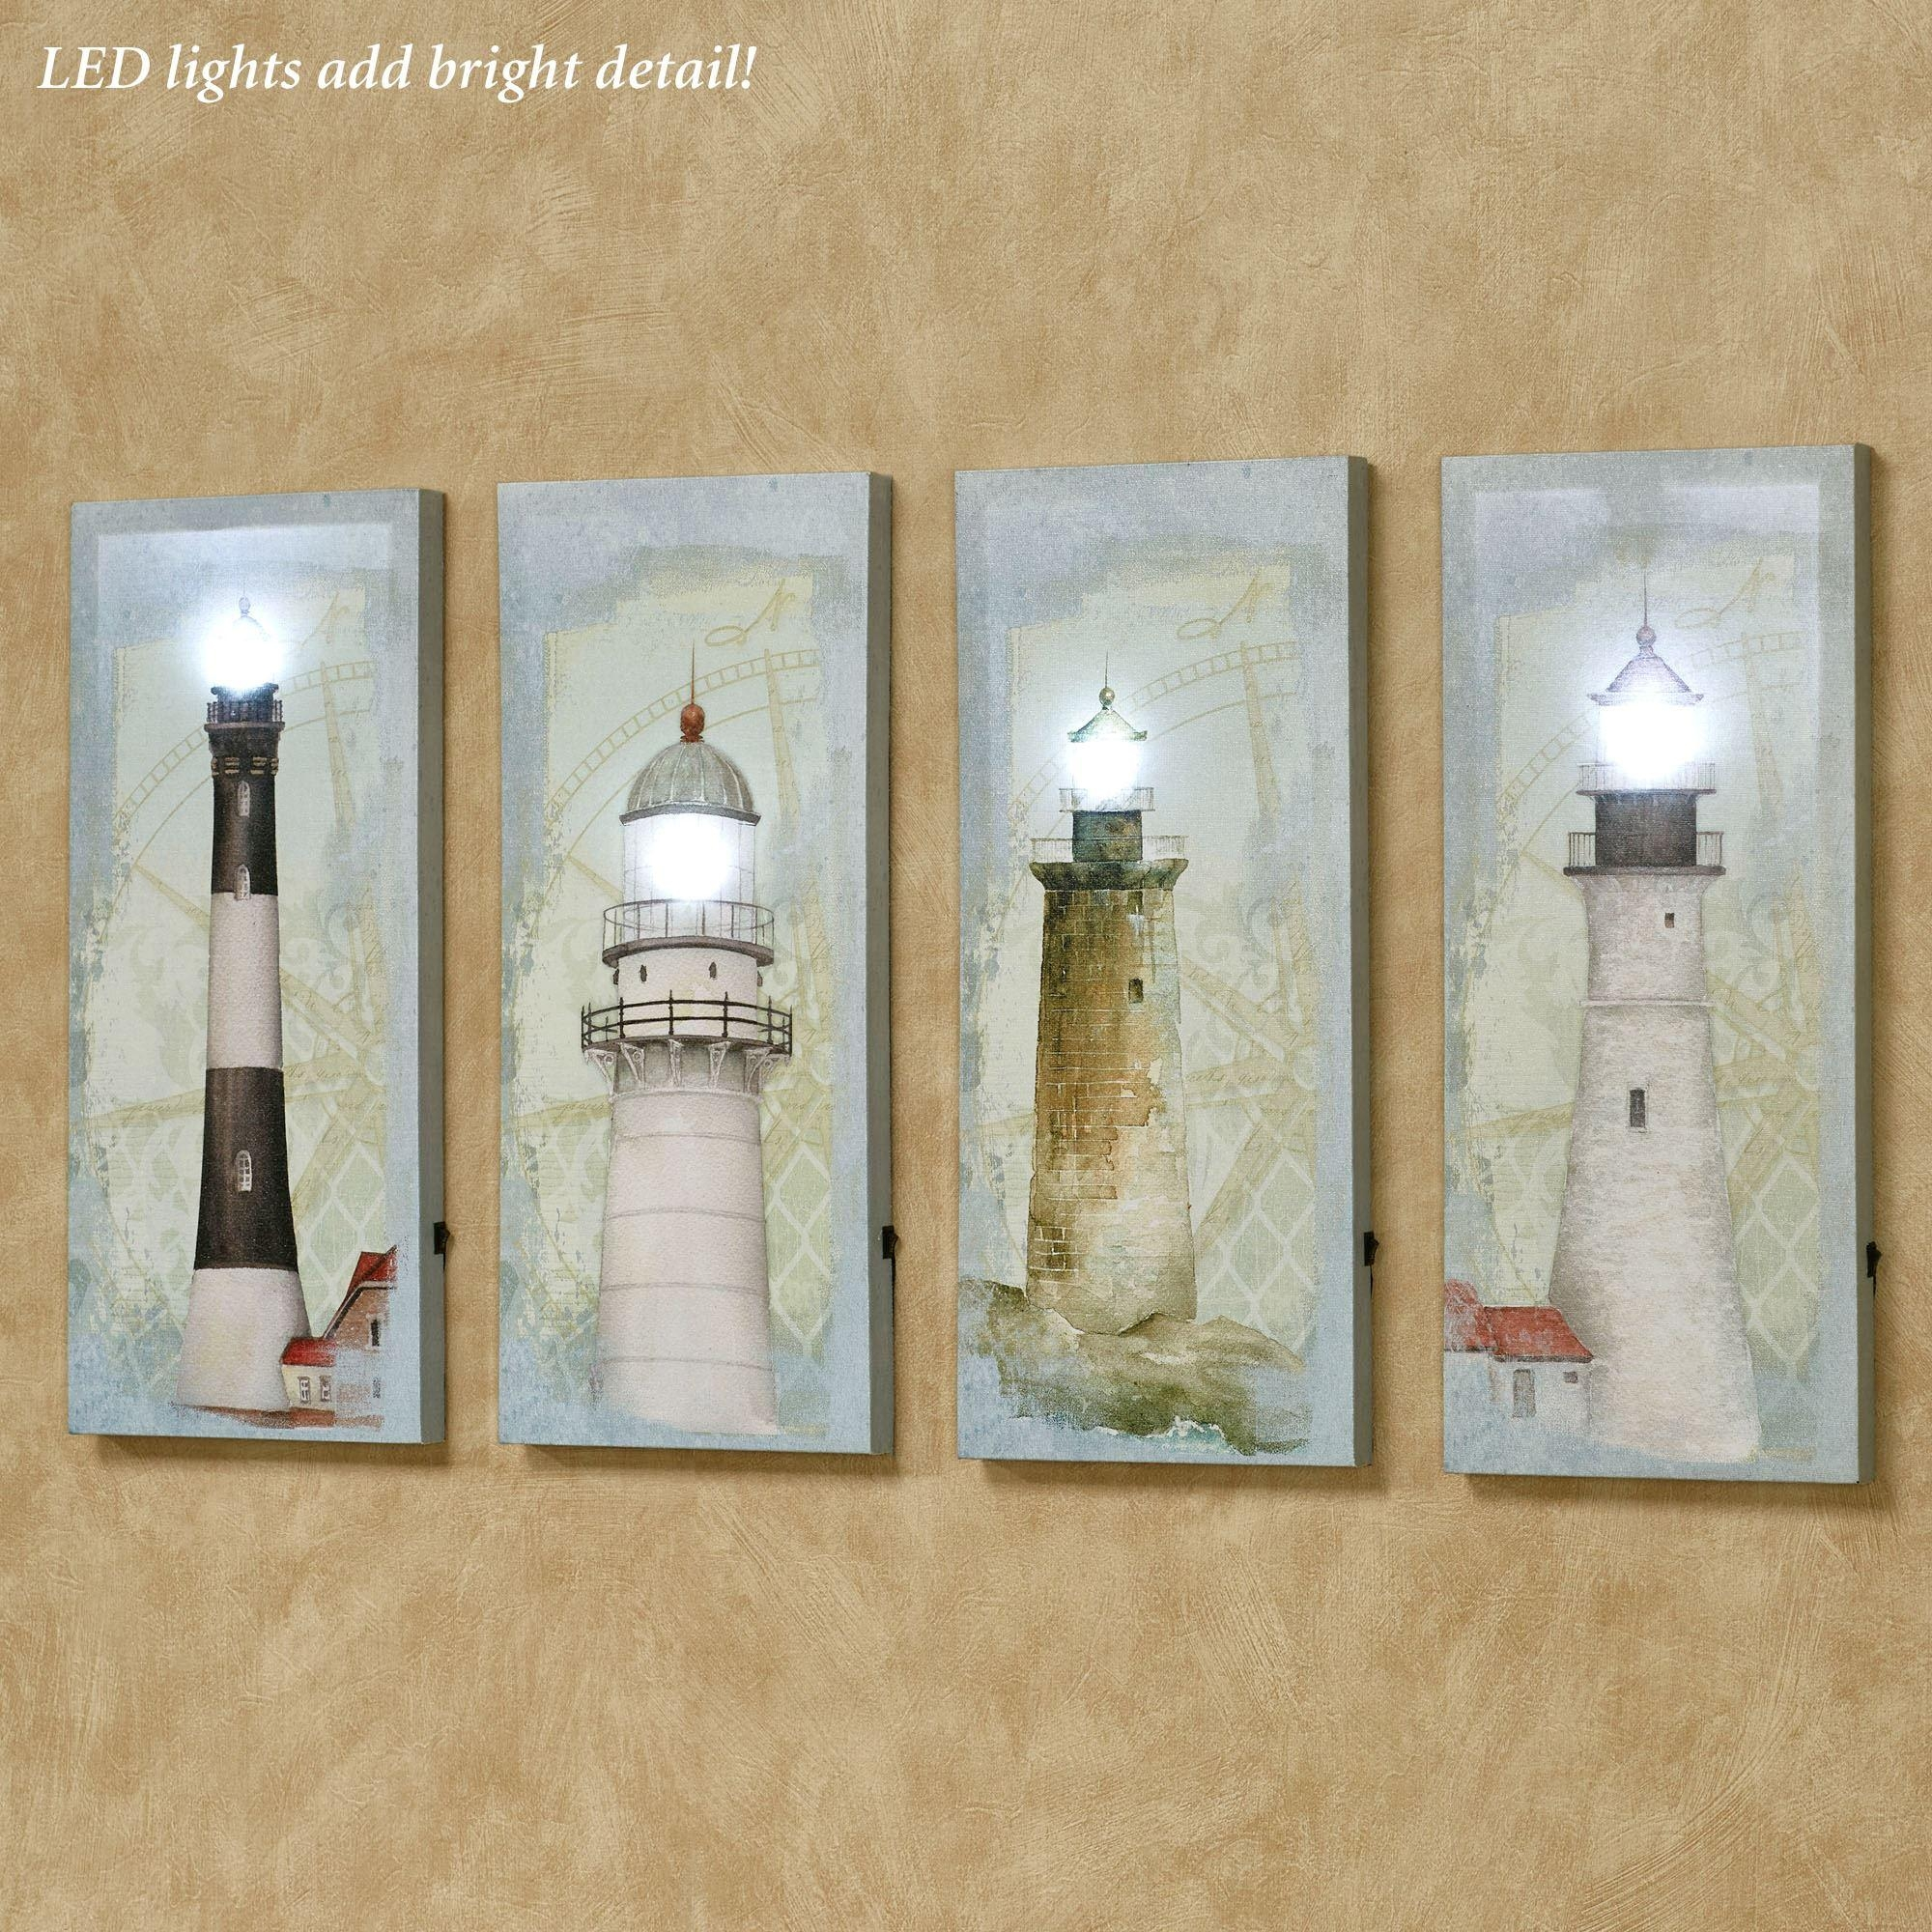 Coastal Lighthouse Led Lighted Canvas Wall Art Set In Coastal Wall Art Canvas (Image 8 of 20)